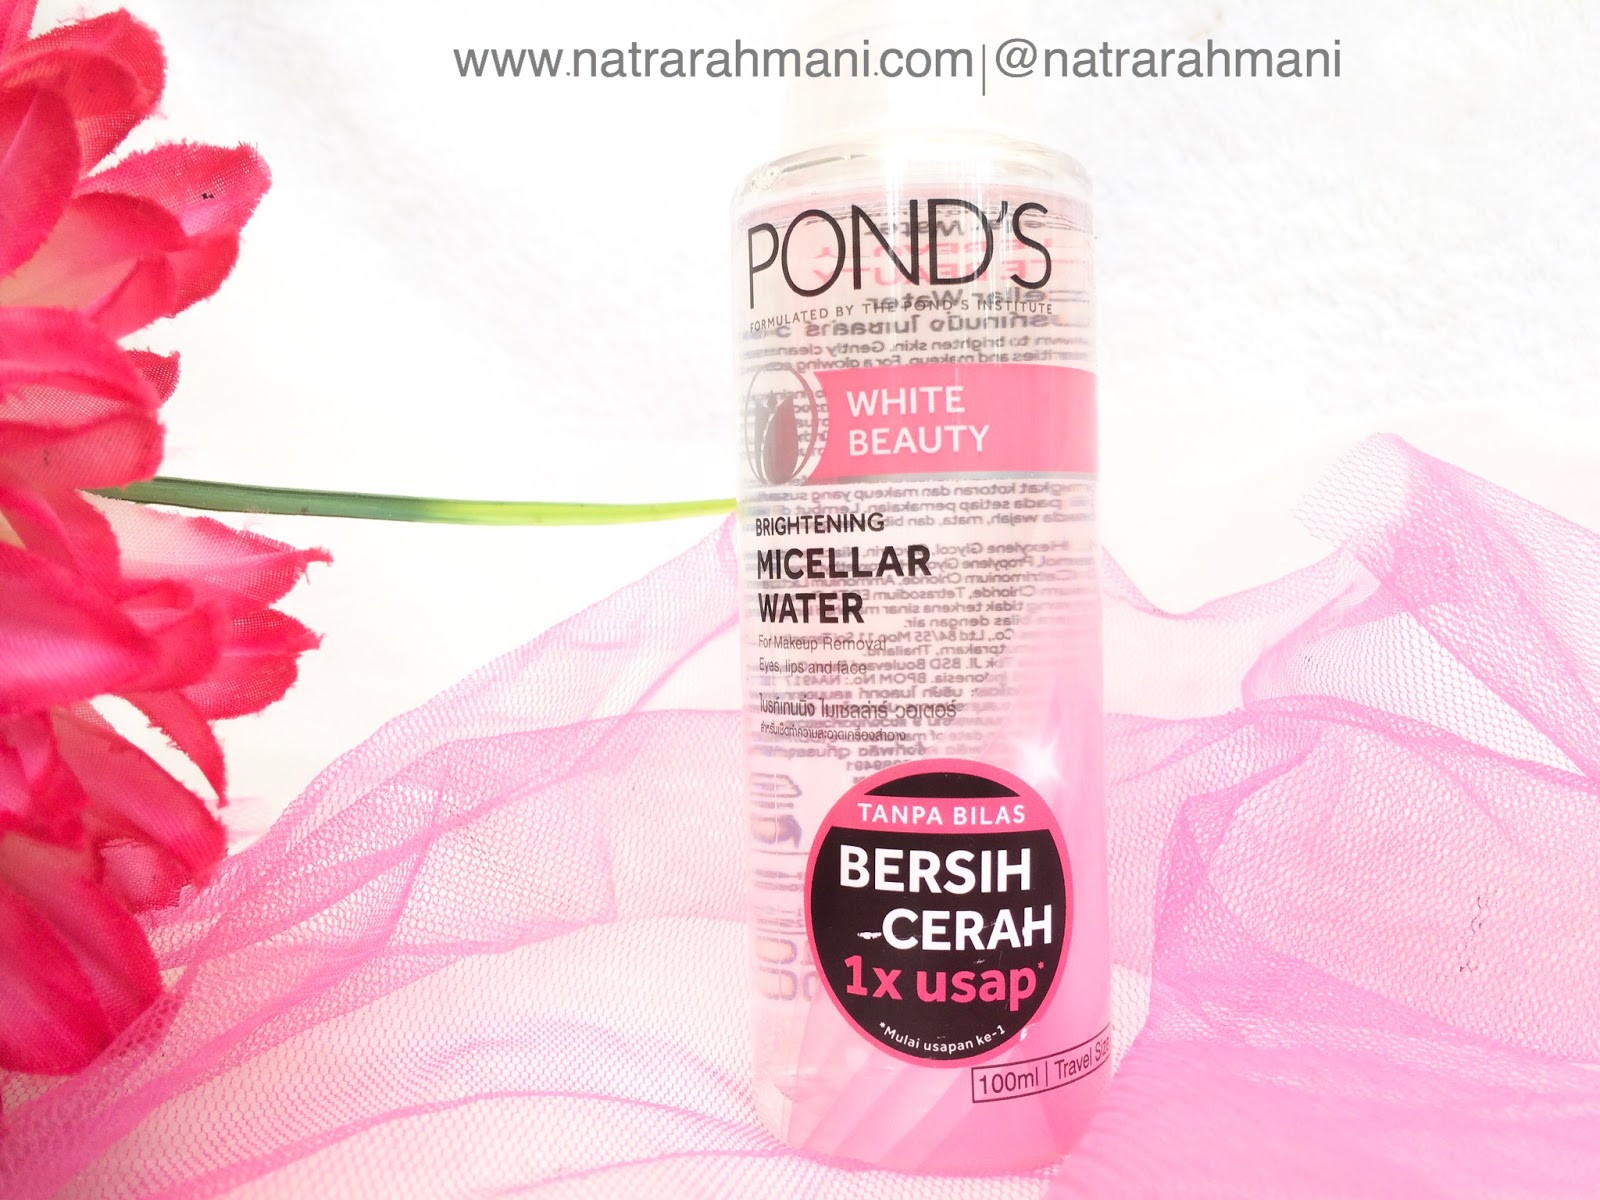 ponds-white-beauty-brightening-micellar-water-review